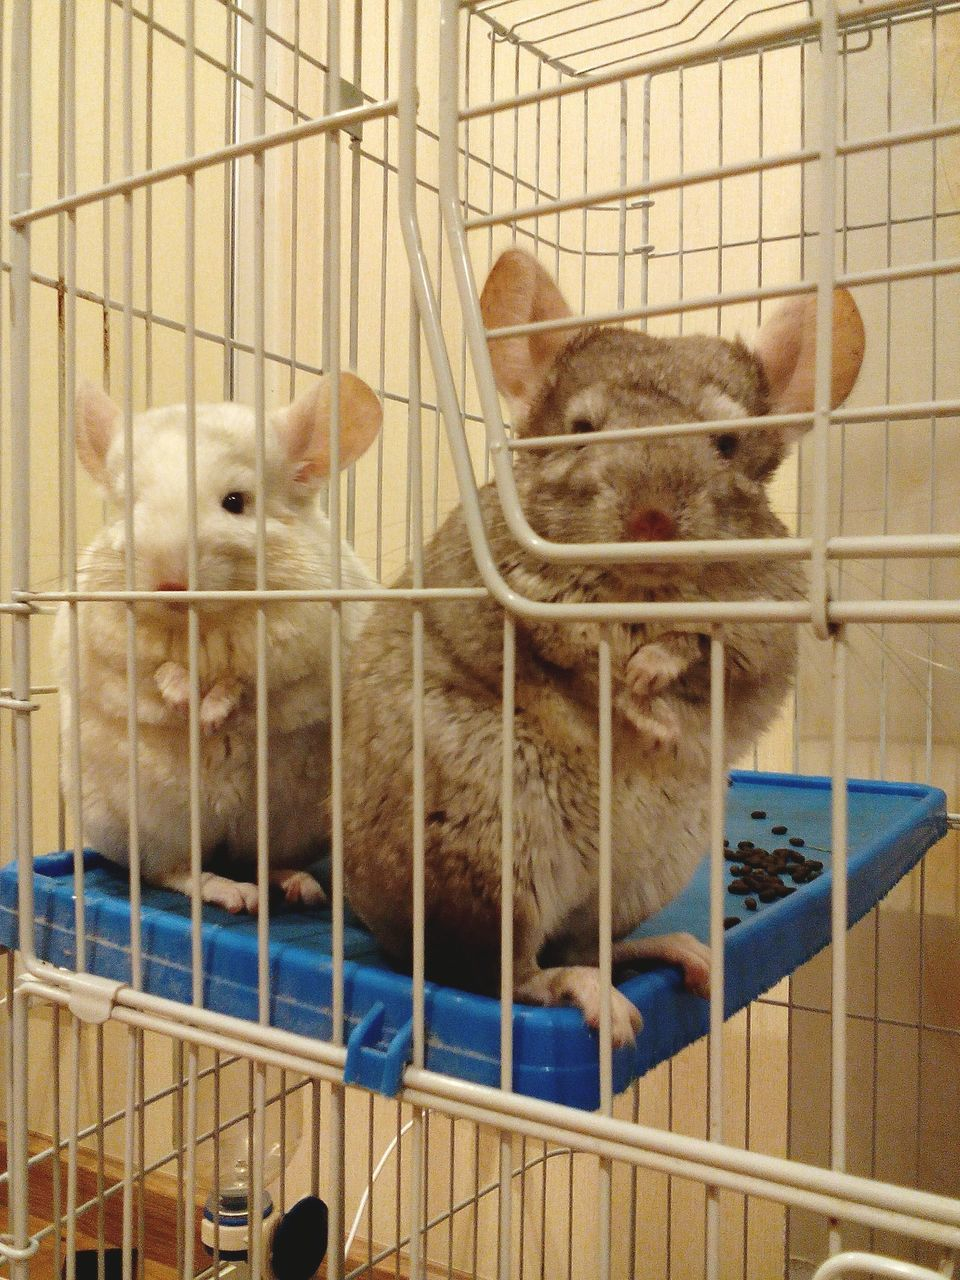 cage, animal themes, domestic animals, pets, indoors, mammal, metal, animals in captivity, trapped, no people, day, security bar